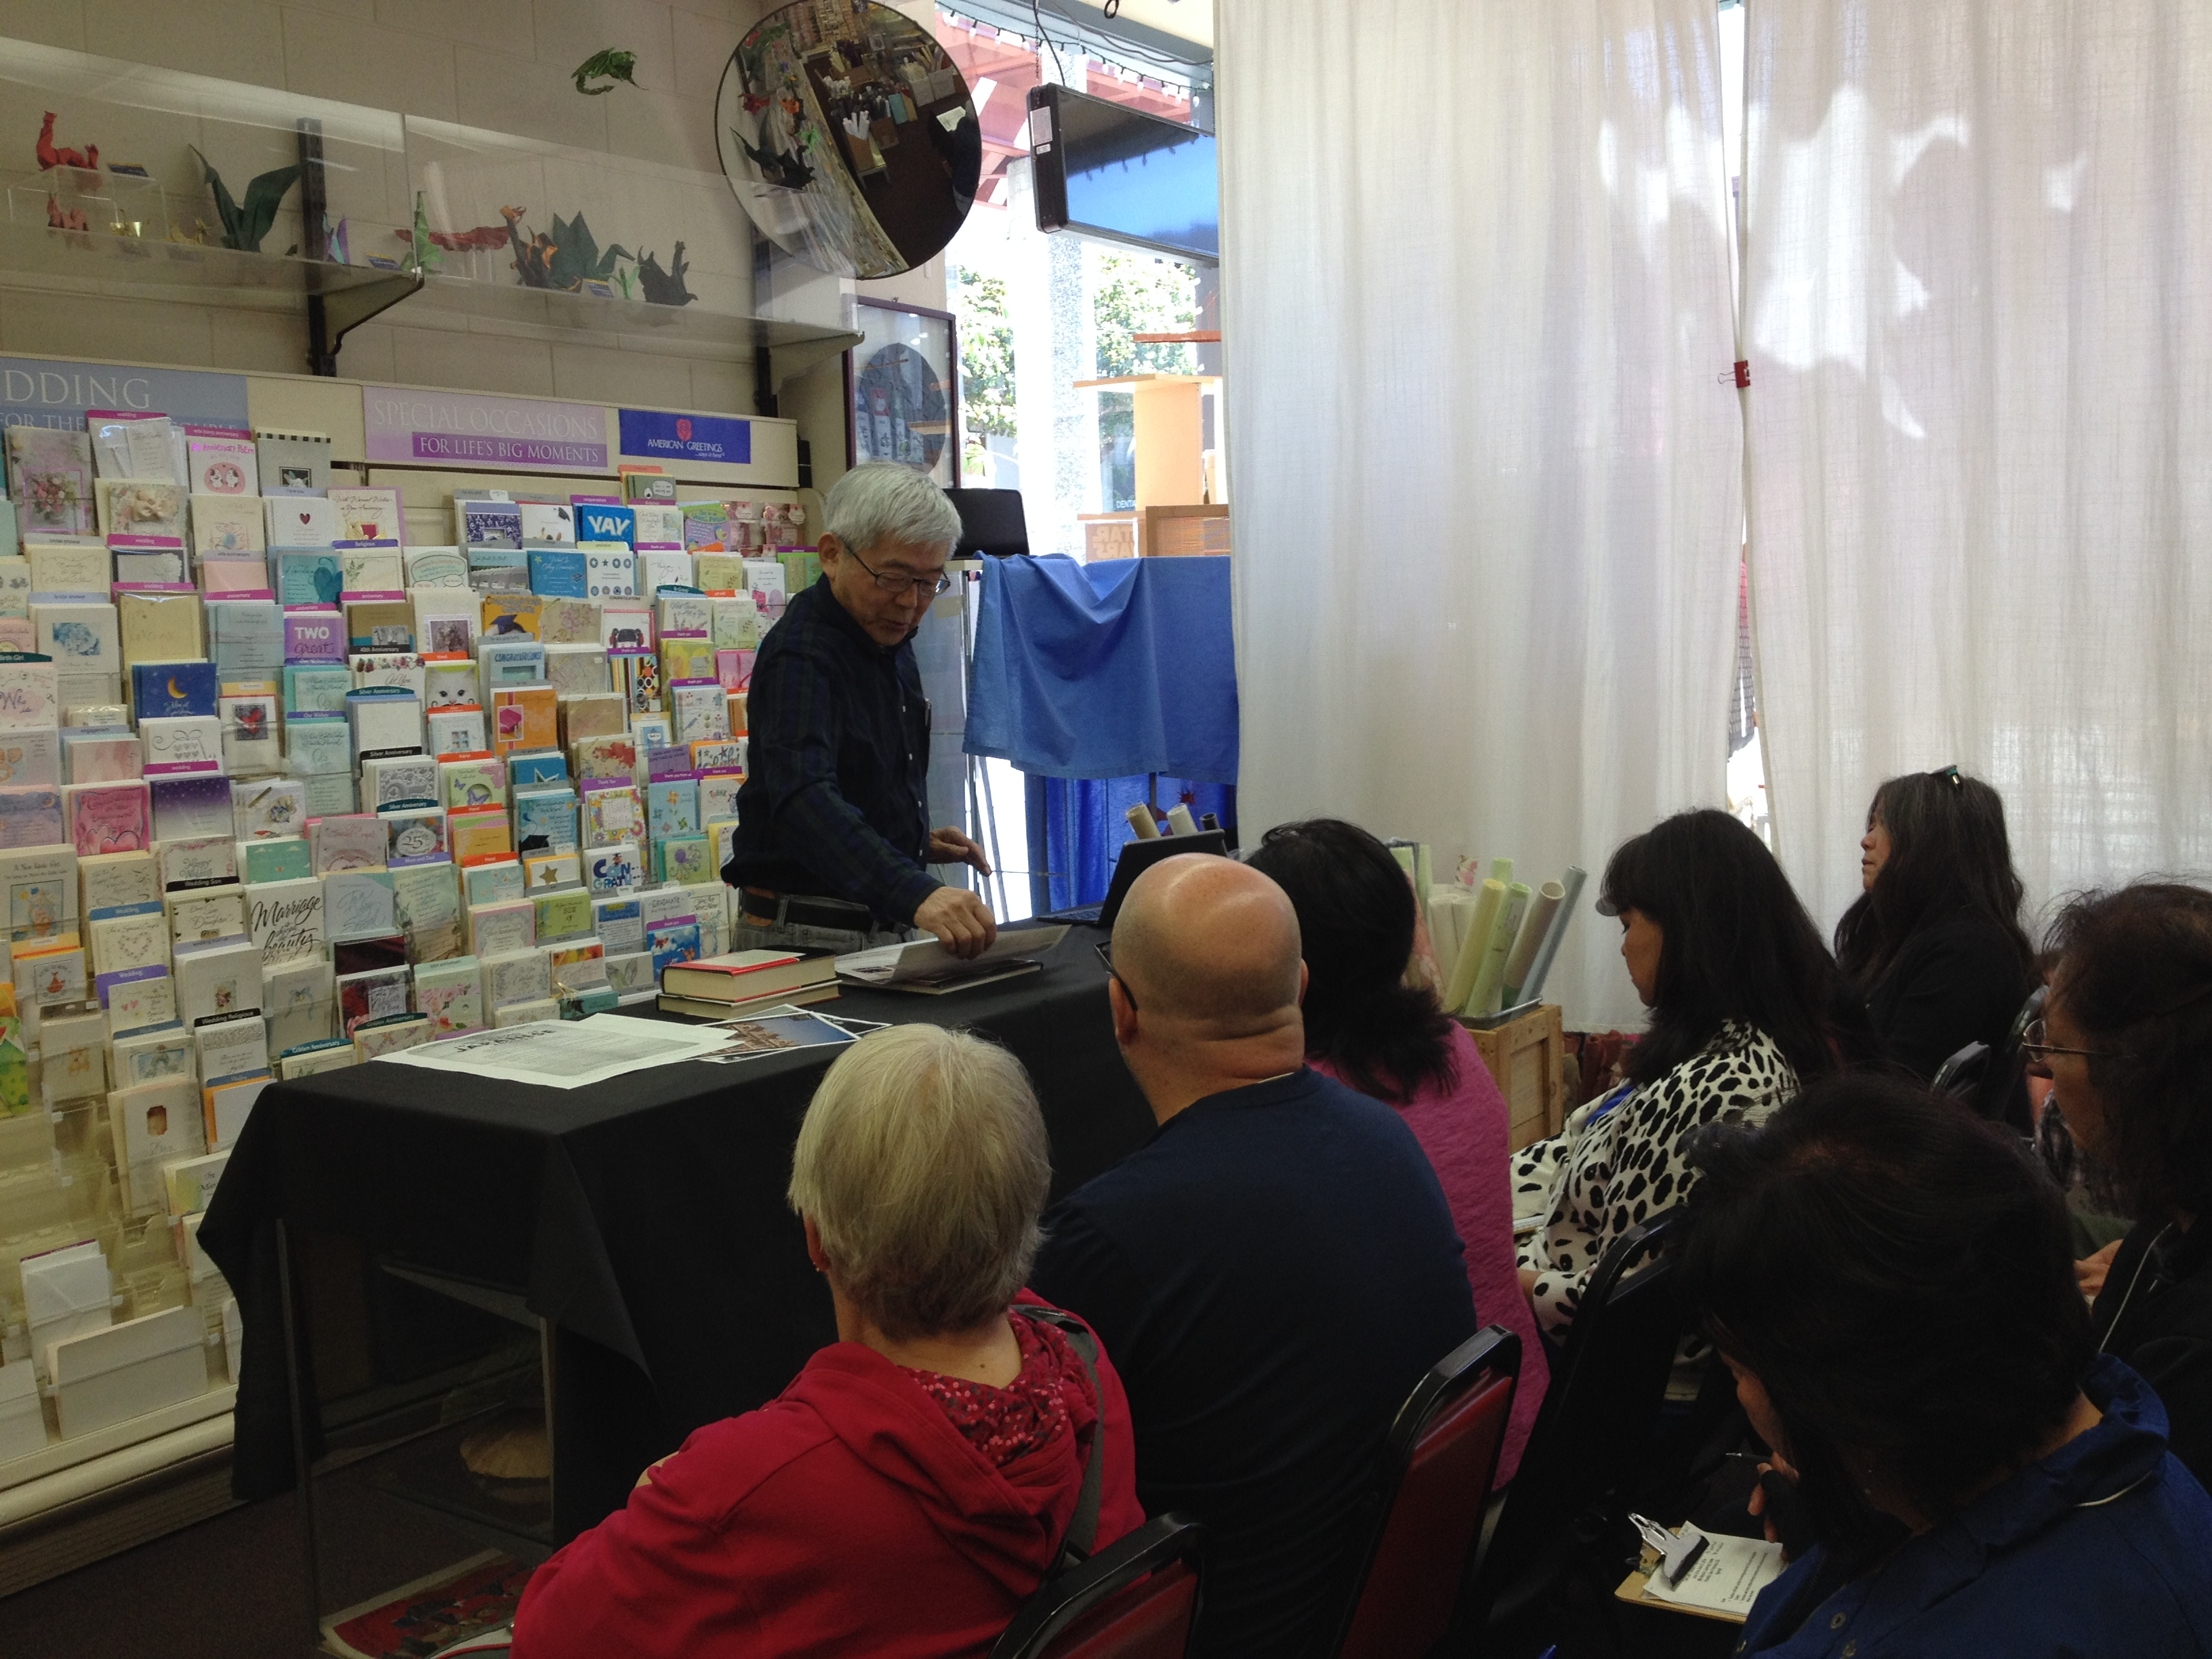 Nob Mihara speaks with teachers in Japantown, San Francisco.